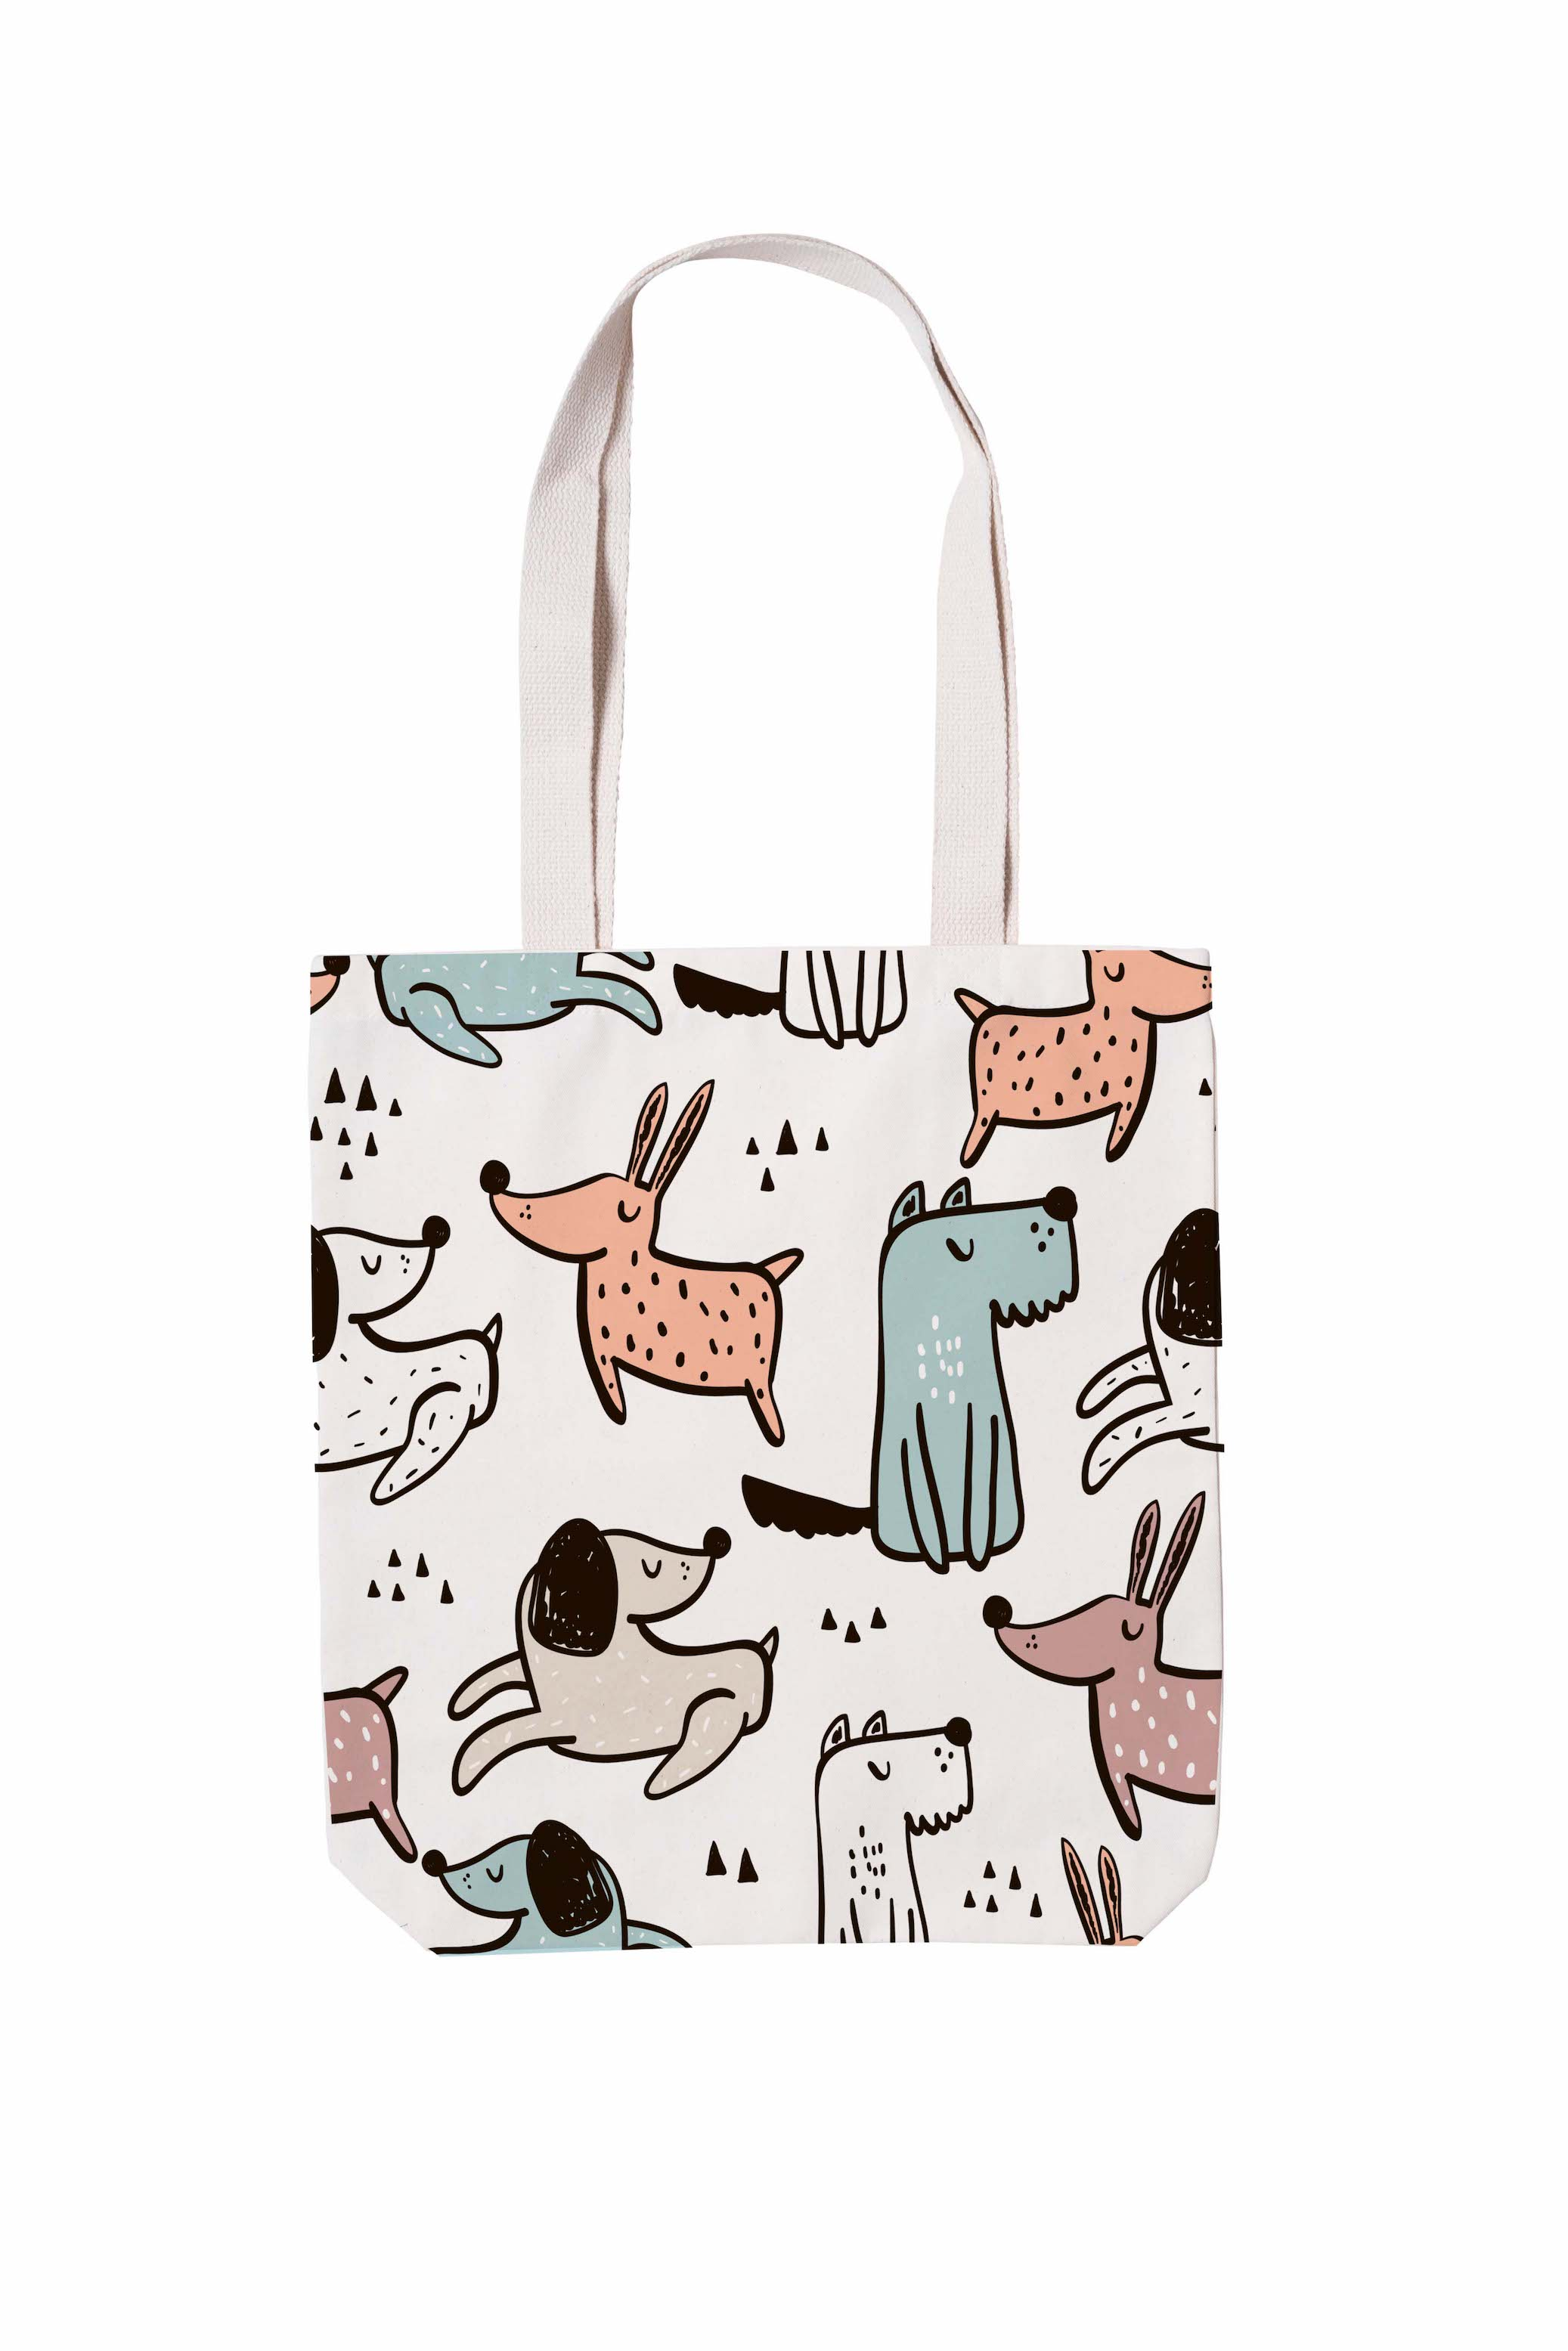 DOGS_DTS-007 Eco Fashion Tote Natural.jpg